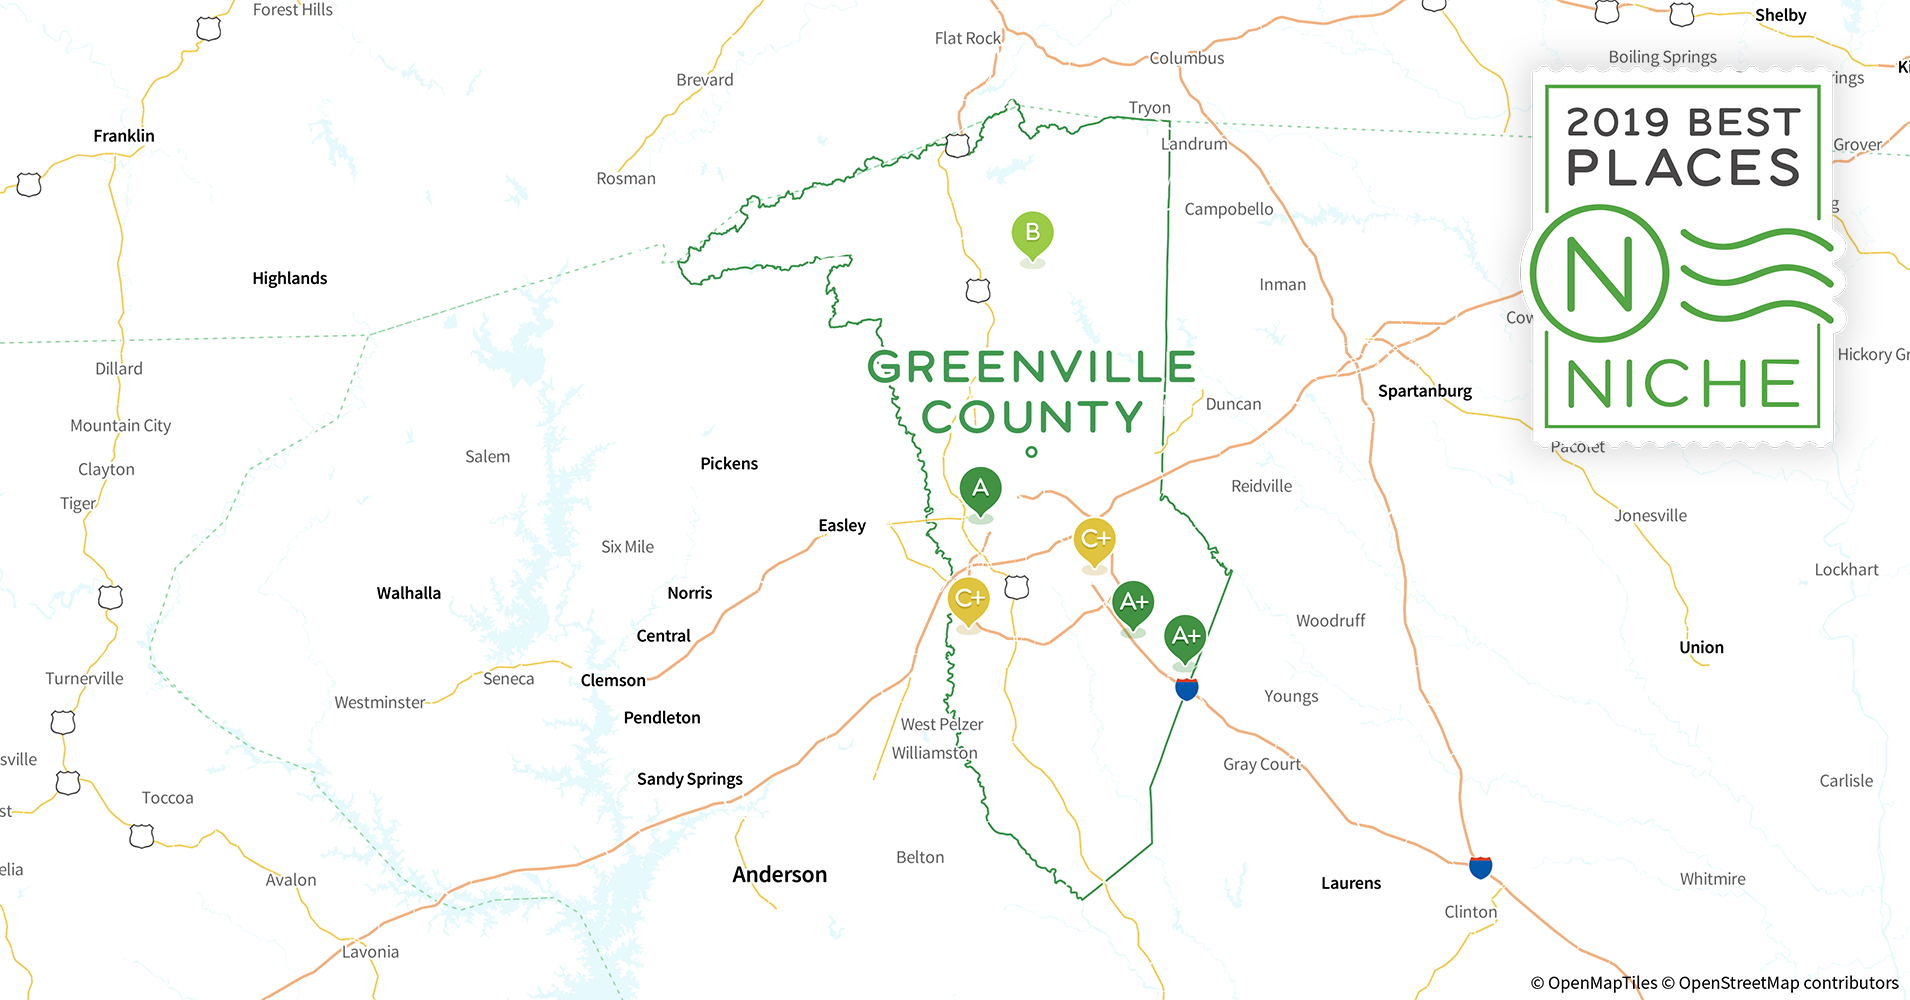 2019 Best Places To Live In Greenville County Sc Niche